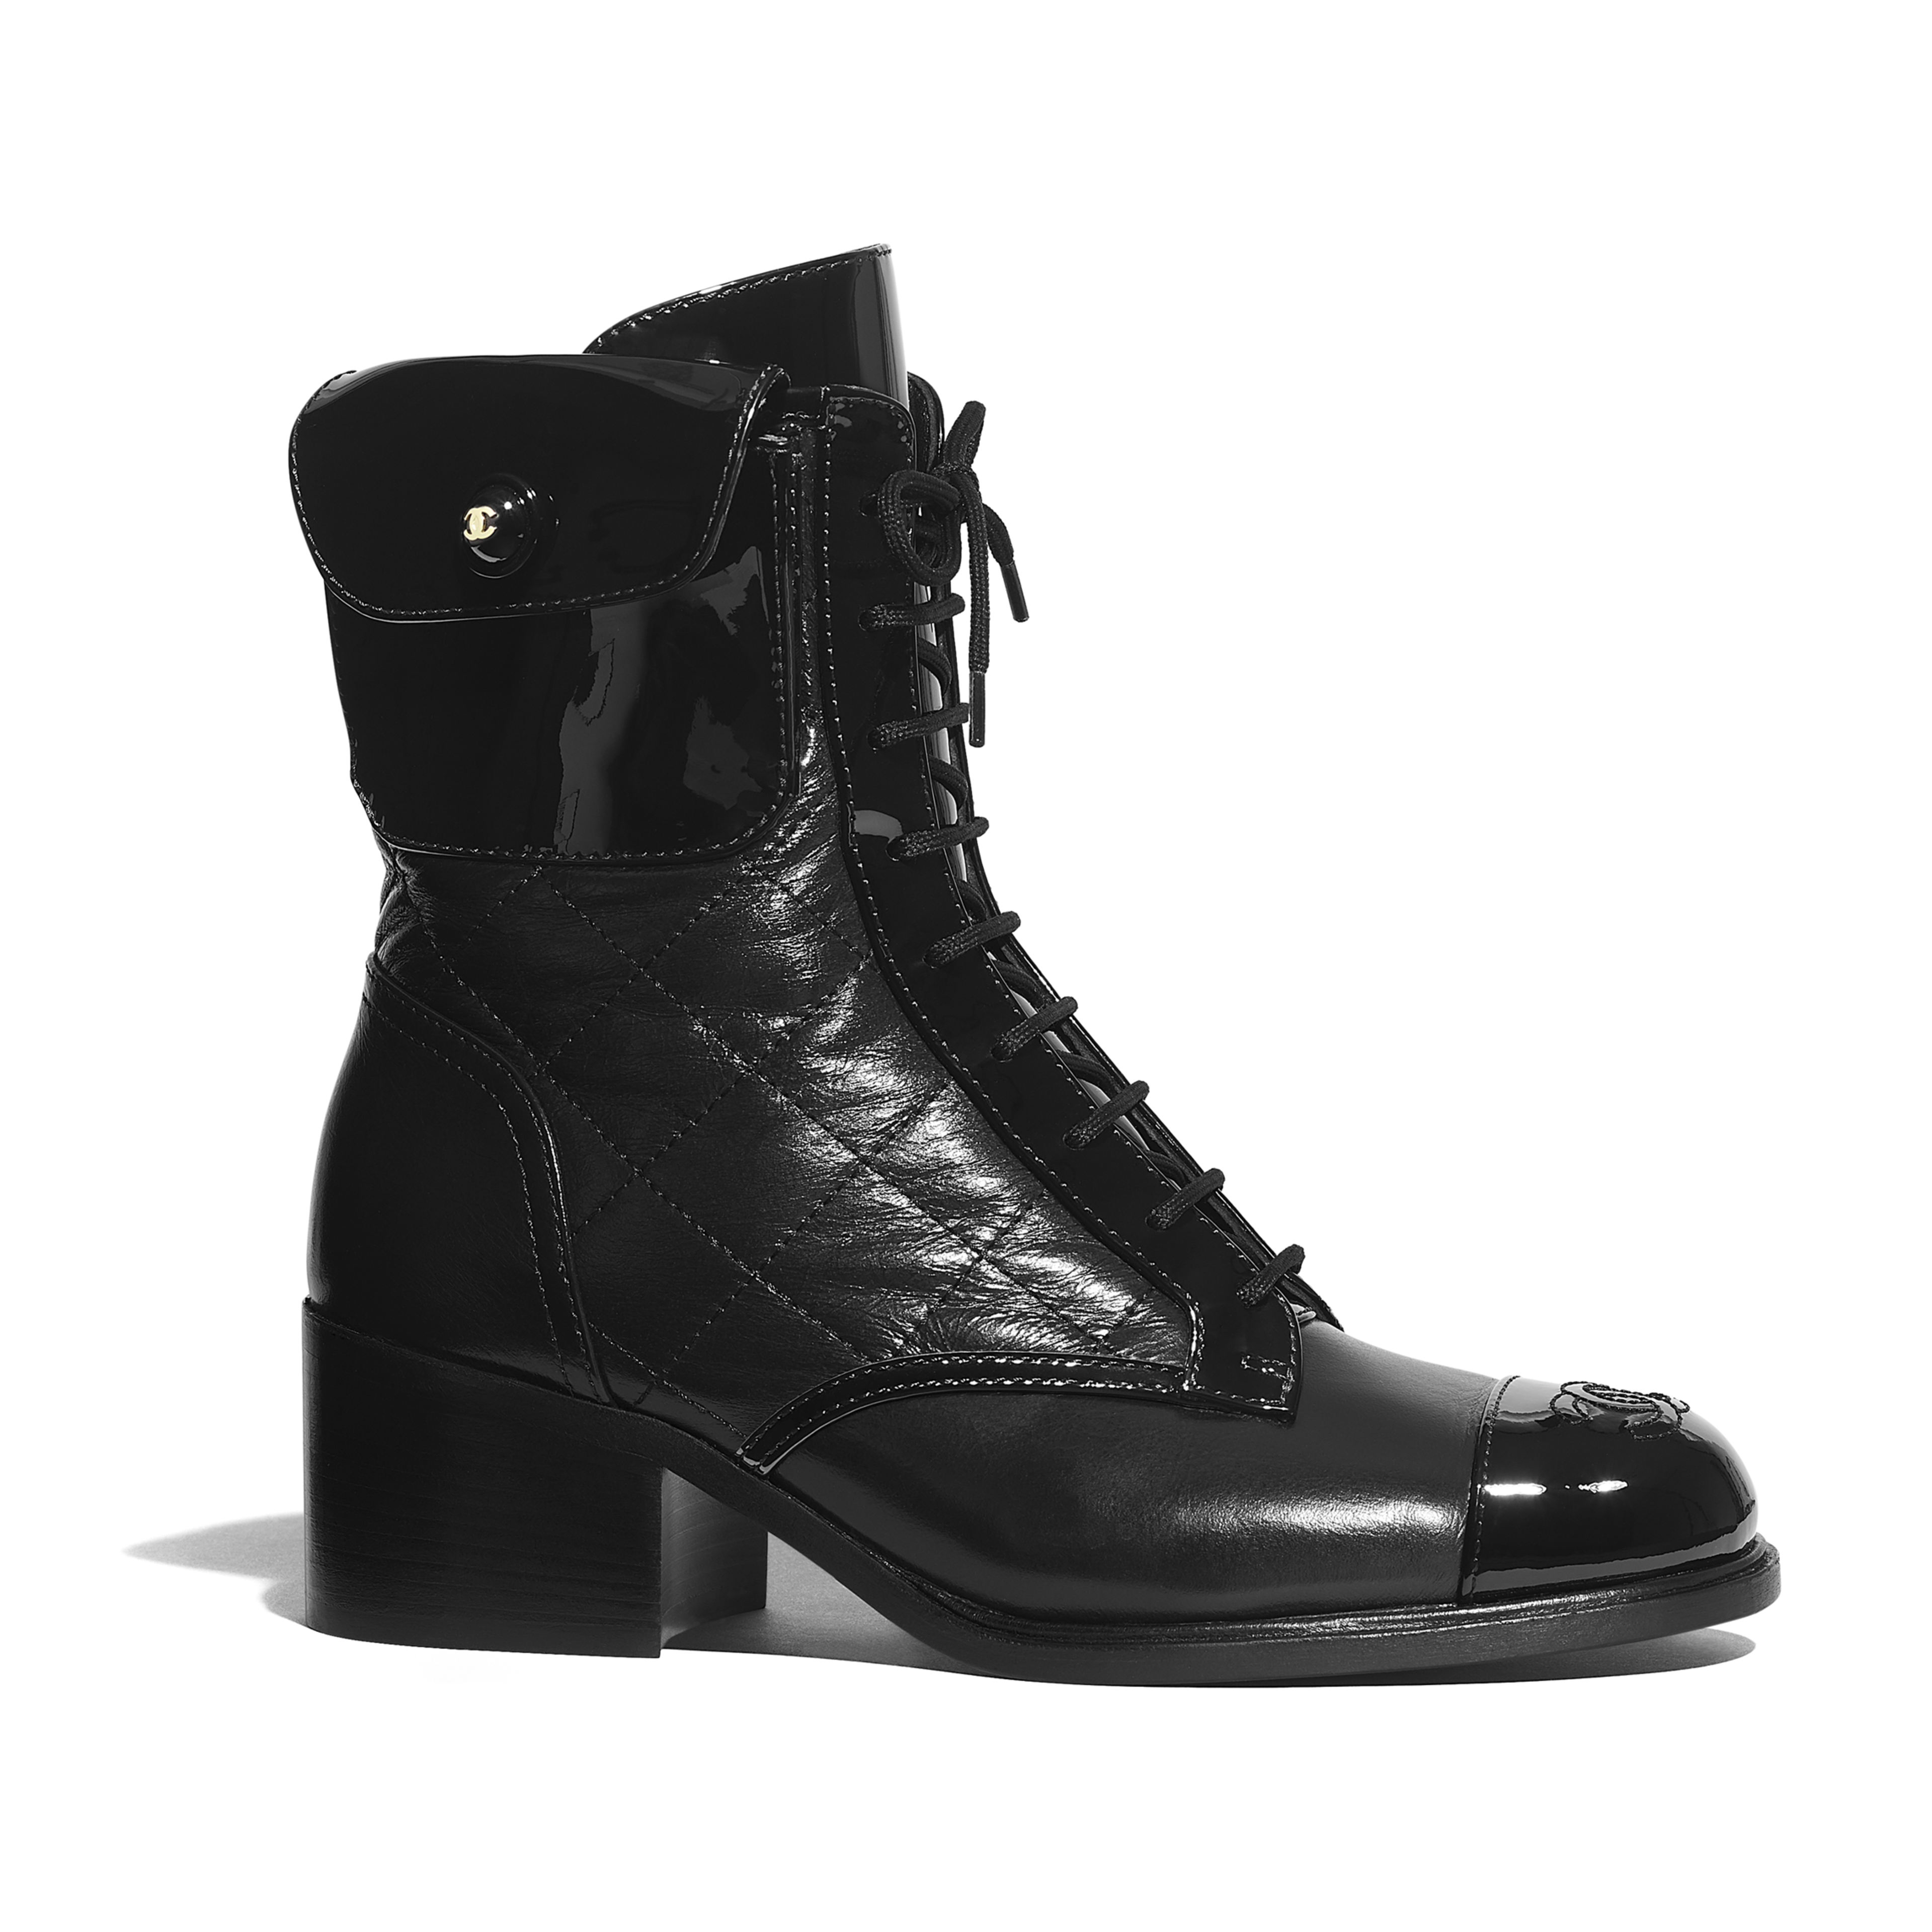 Ankle Boots - Black - Patent Calfskin & Crumpled Calfskin - Default view - see full sized version